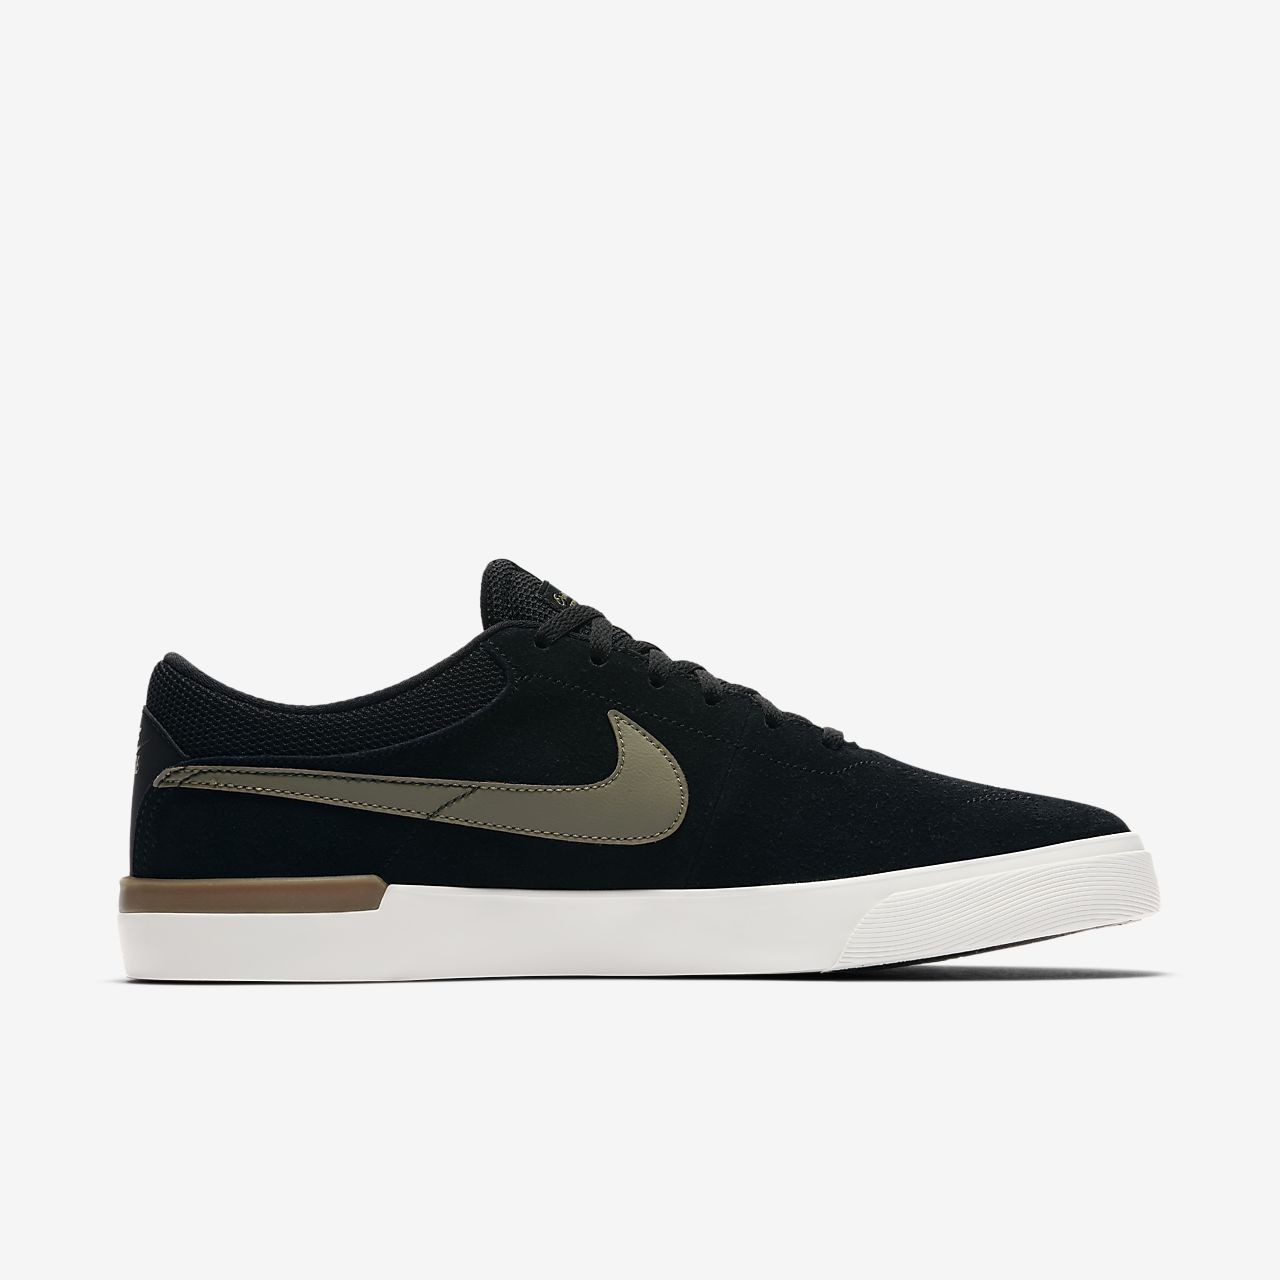 Nike SB Koston Hypervulc Men's Skateboarding Shoes Black/Brown/White eQ6671O